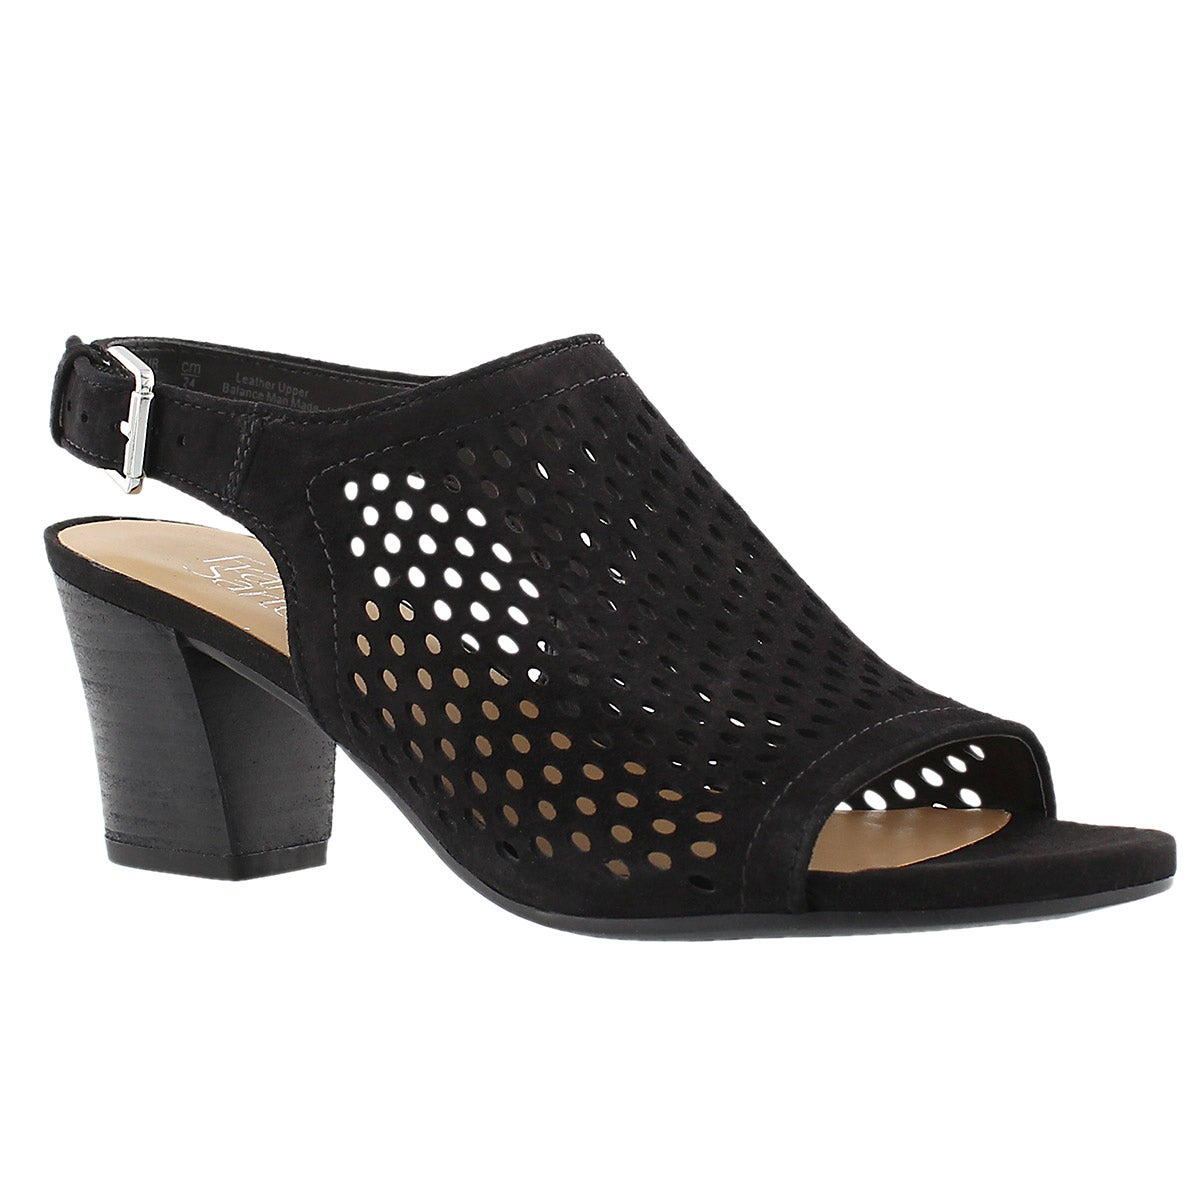 Lds Monaco 2 blk perforated dress sandal